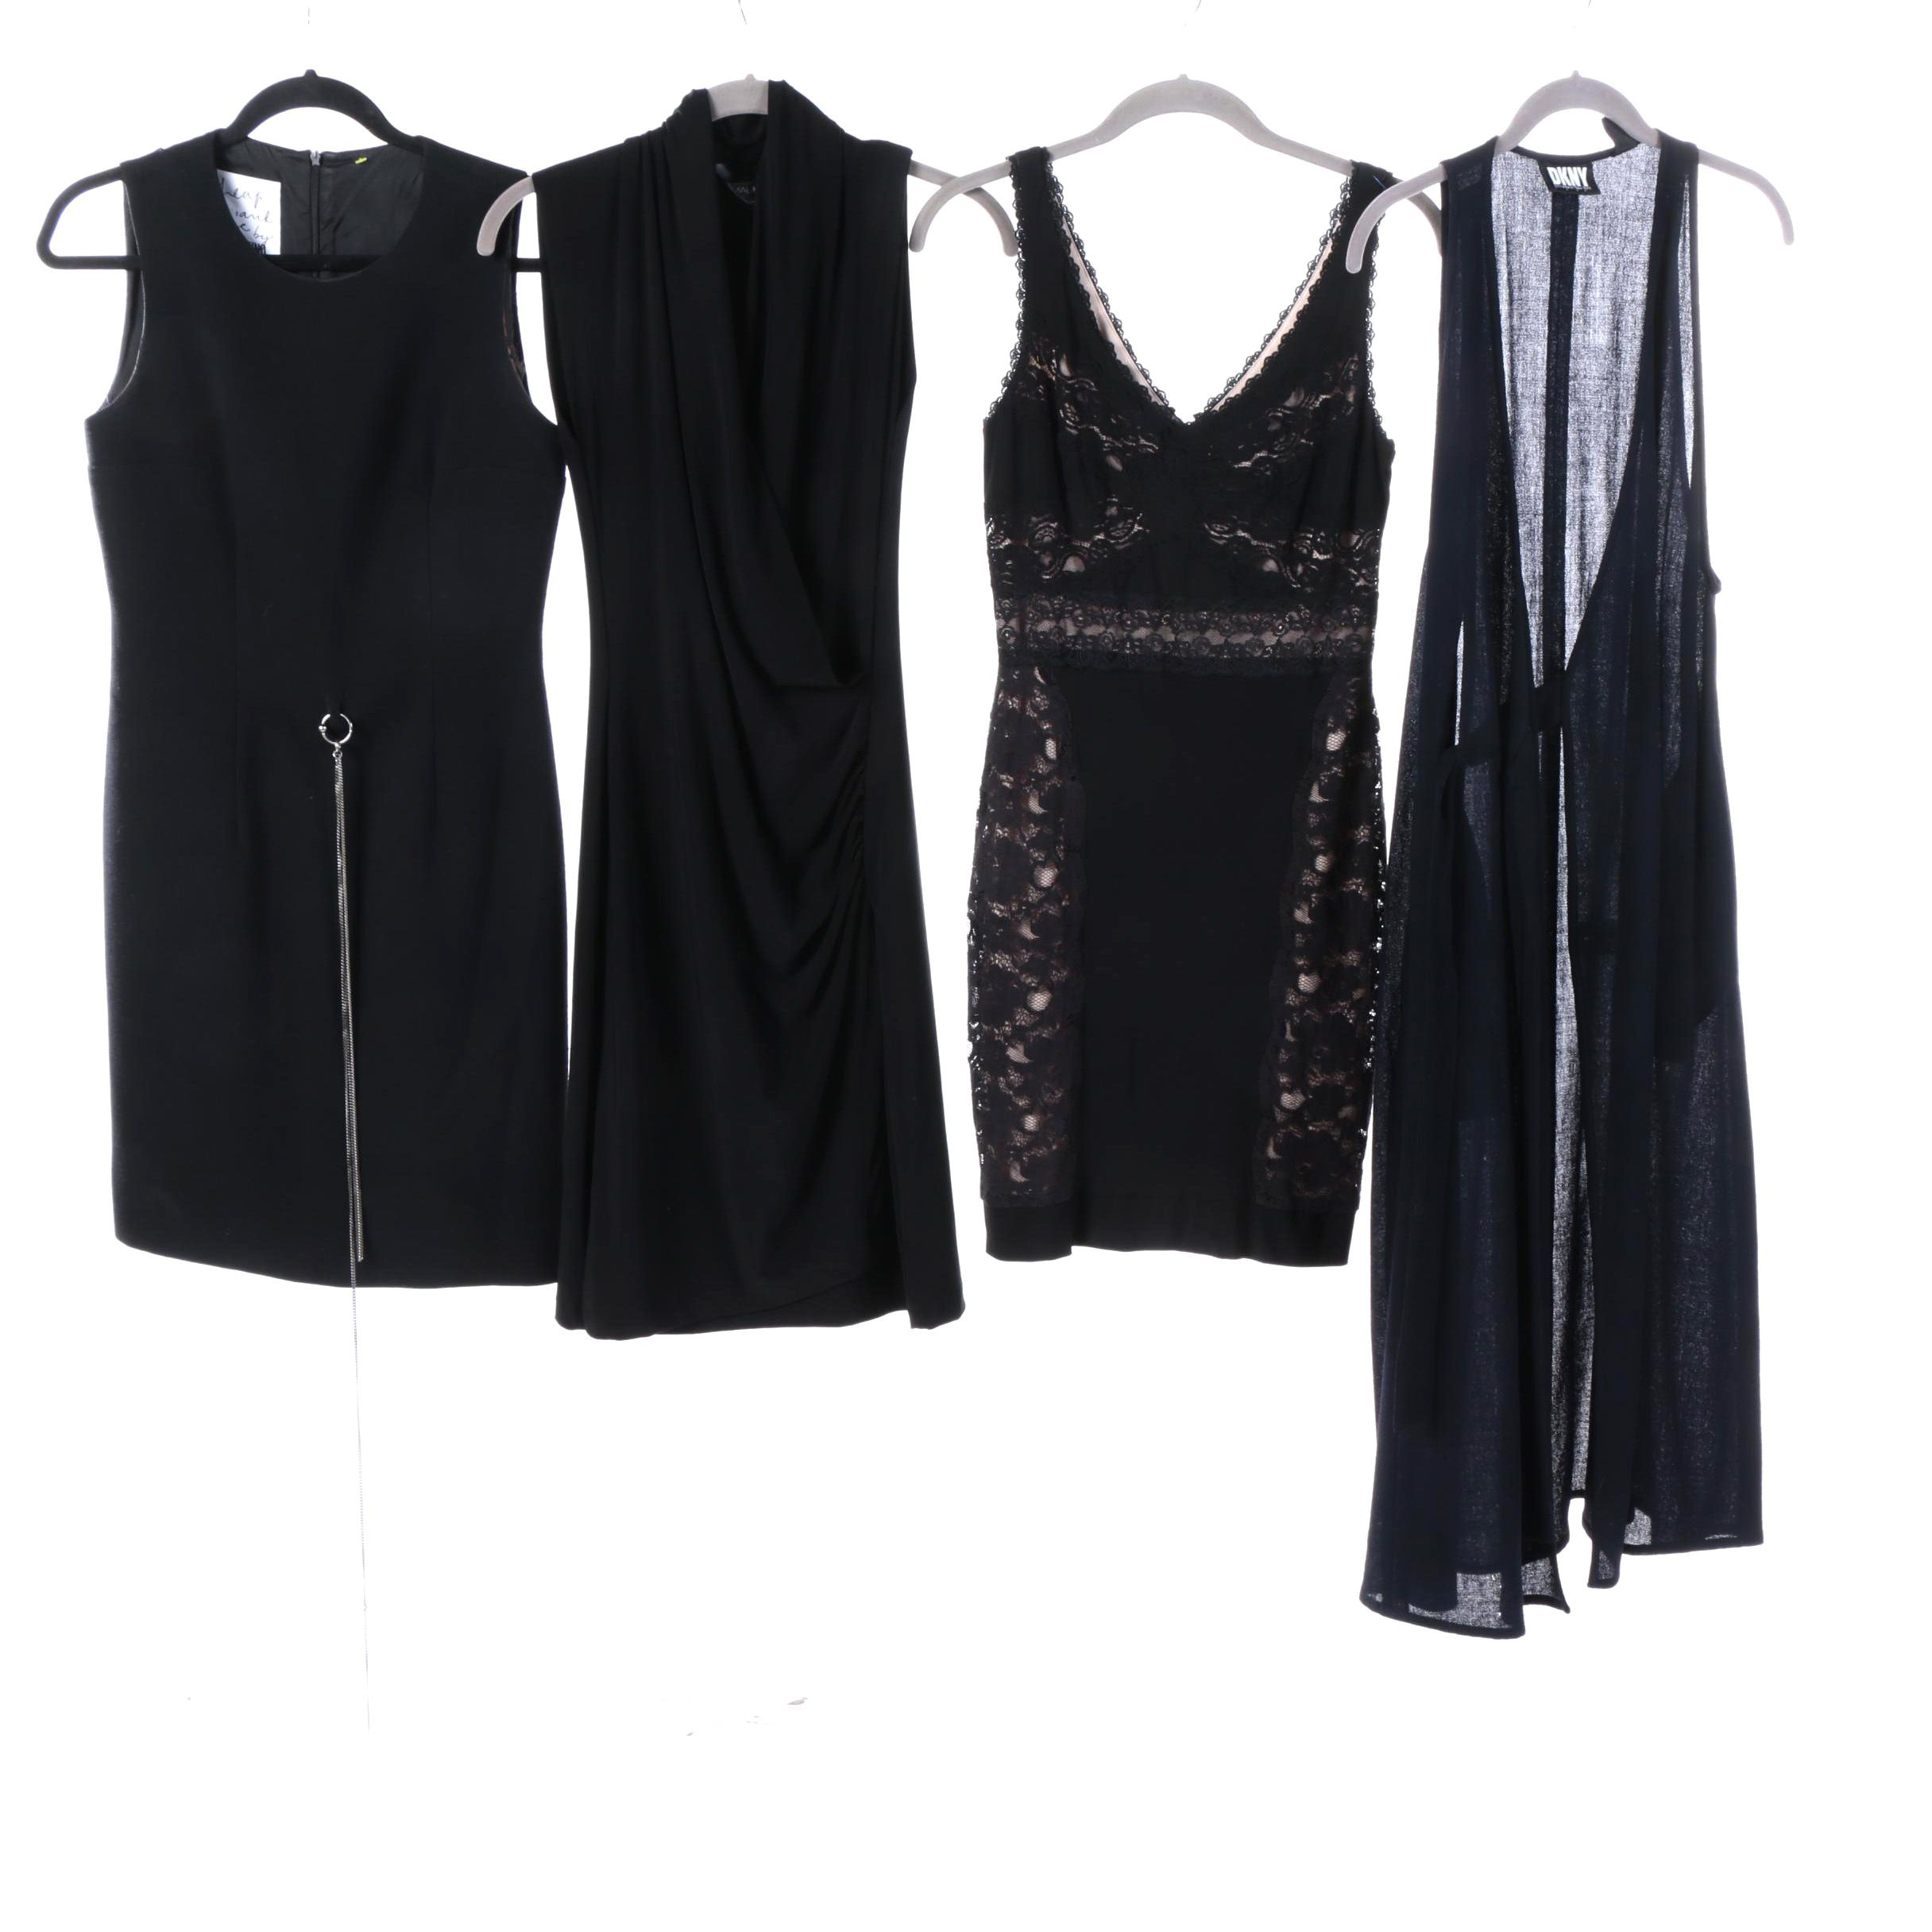 Moschino, Norma Kamali, Donna Karan and Betsy & Adam Cocktail Dresses